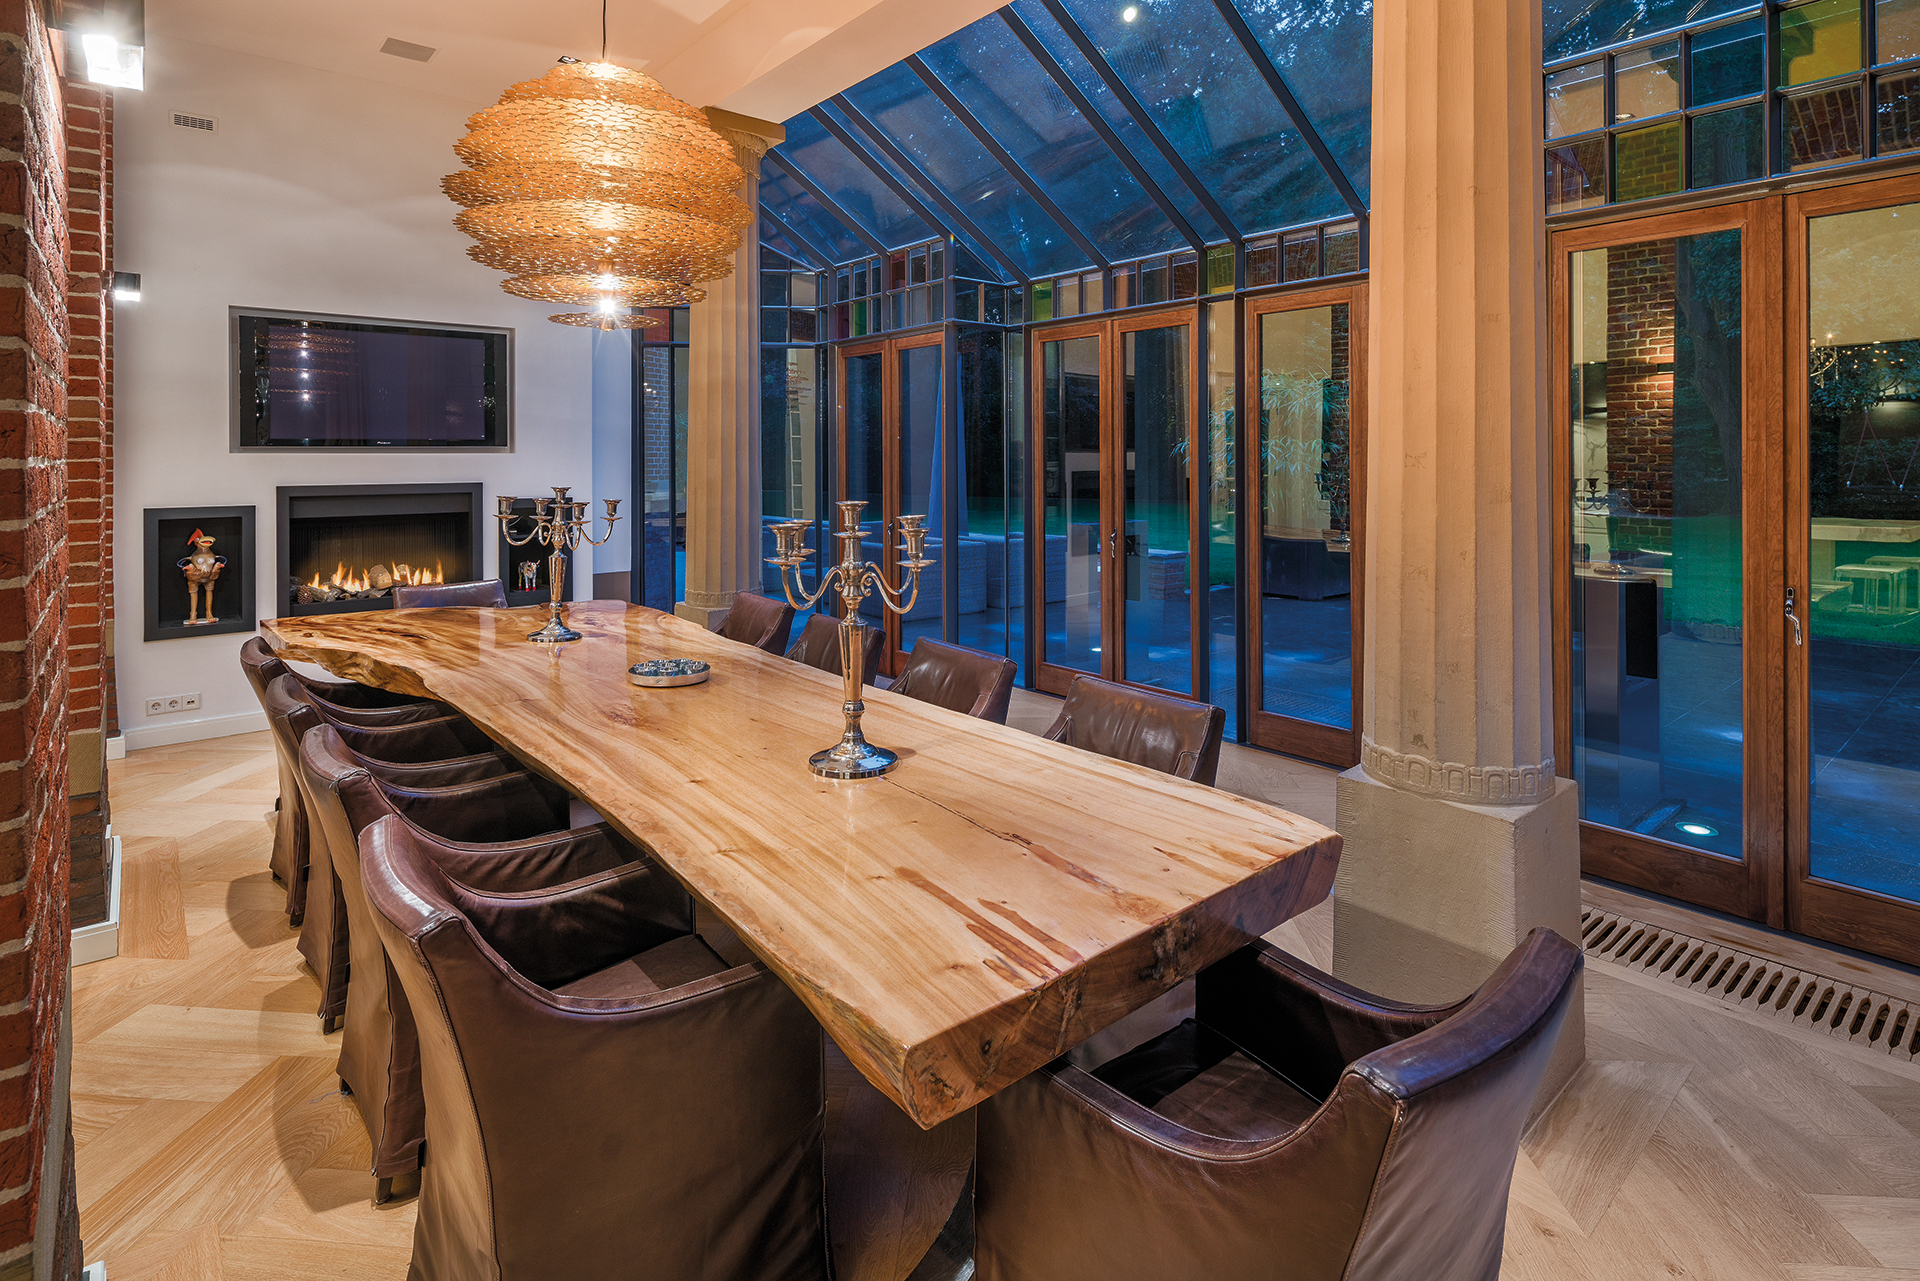 A large dining table from a tree trunk in a pillared foyer